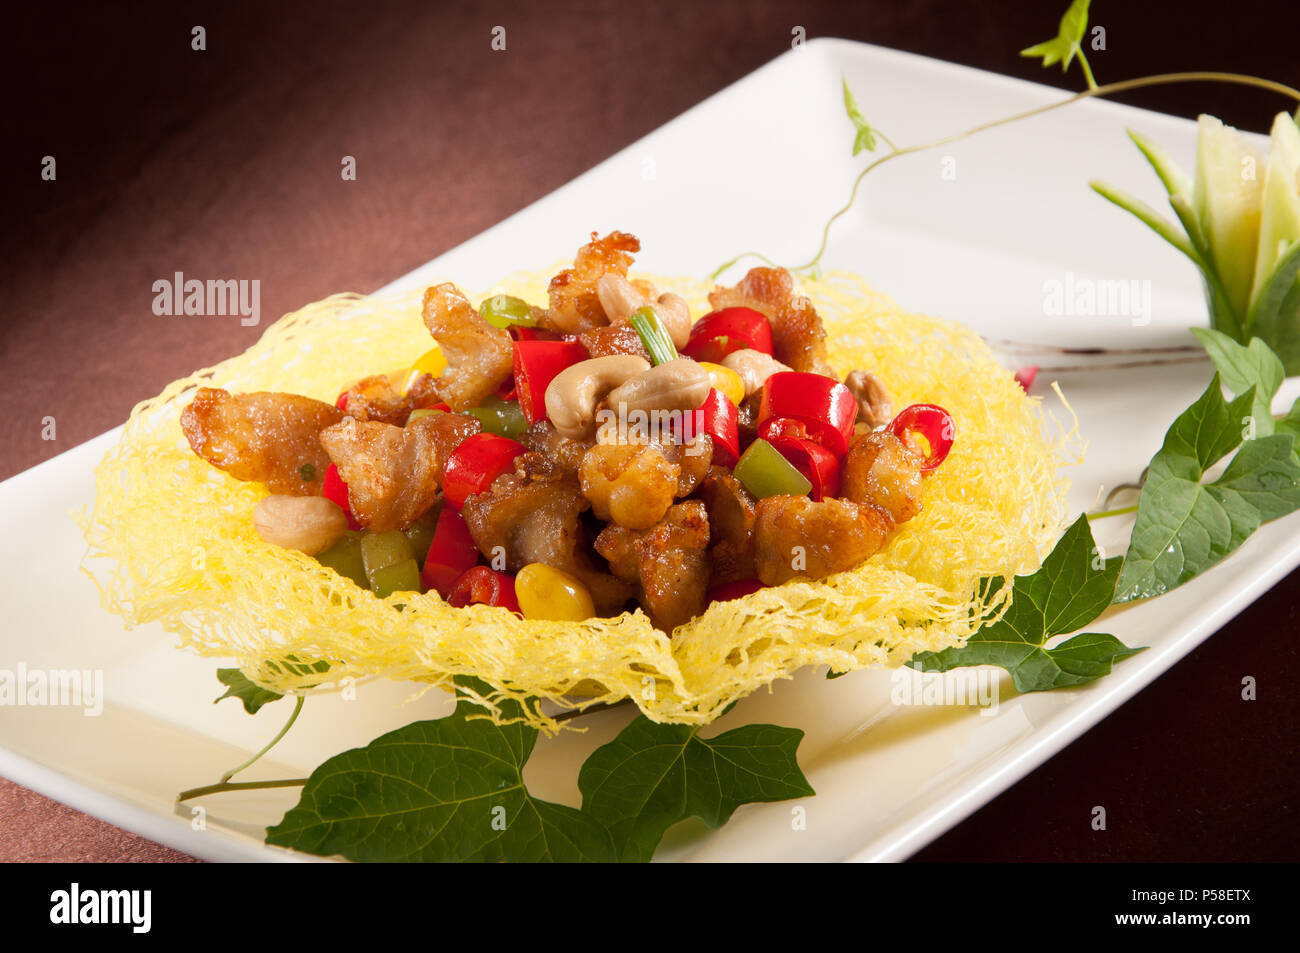 Fried chicken cartilage - Stock Image